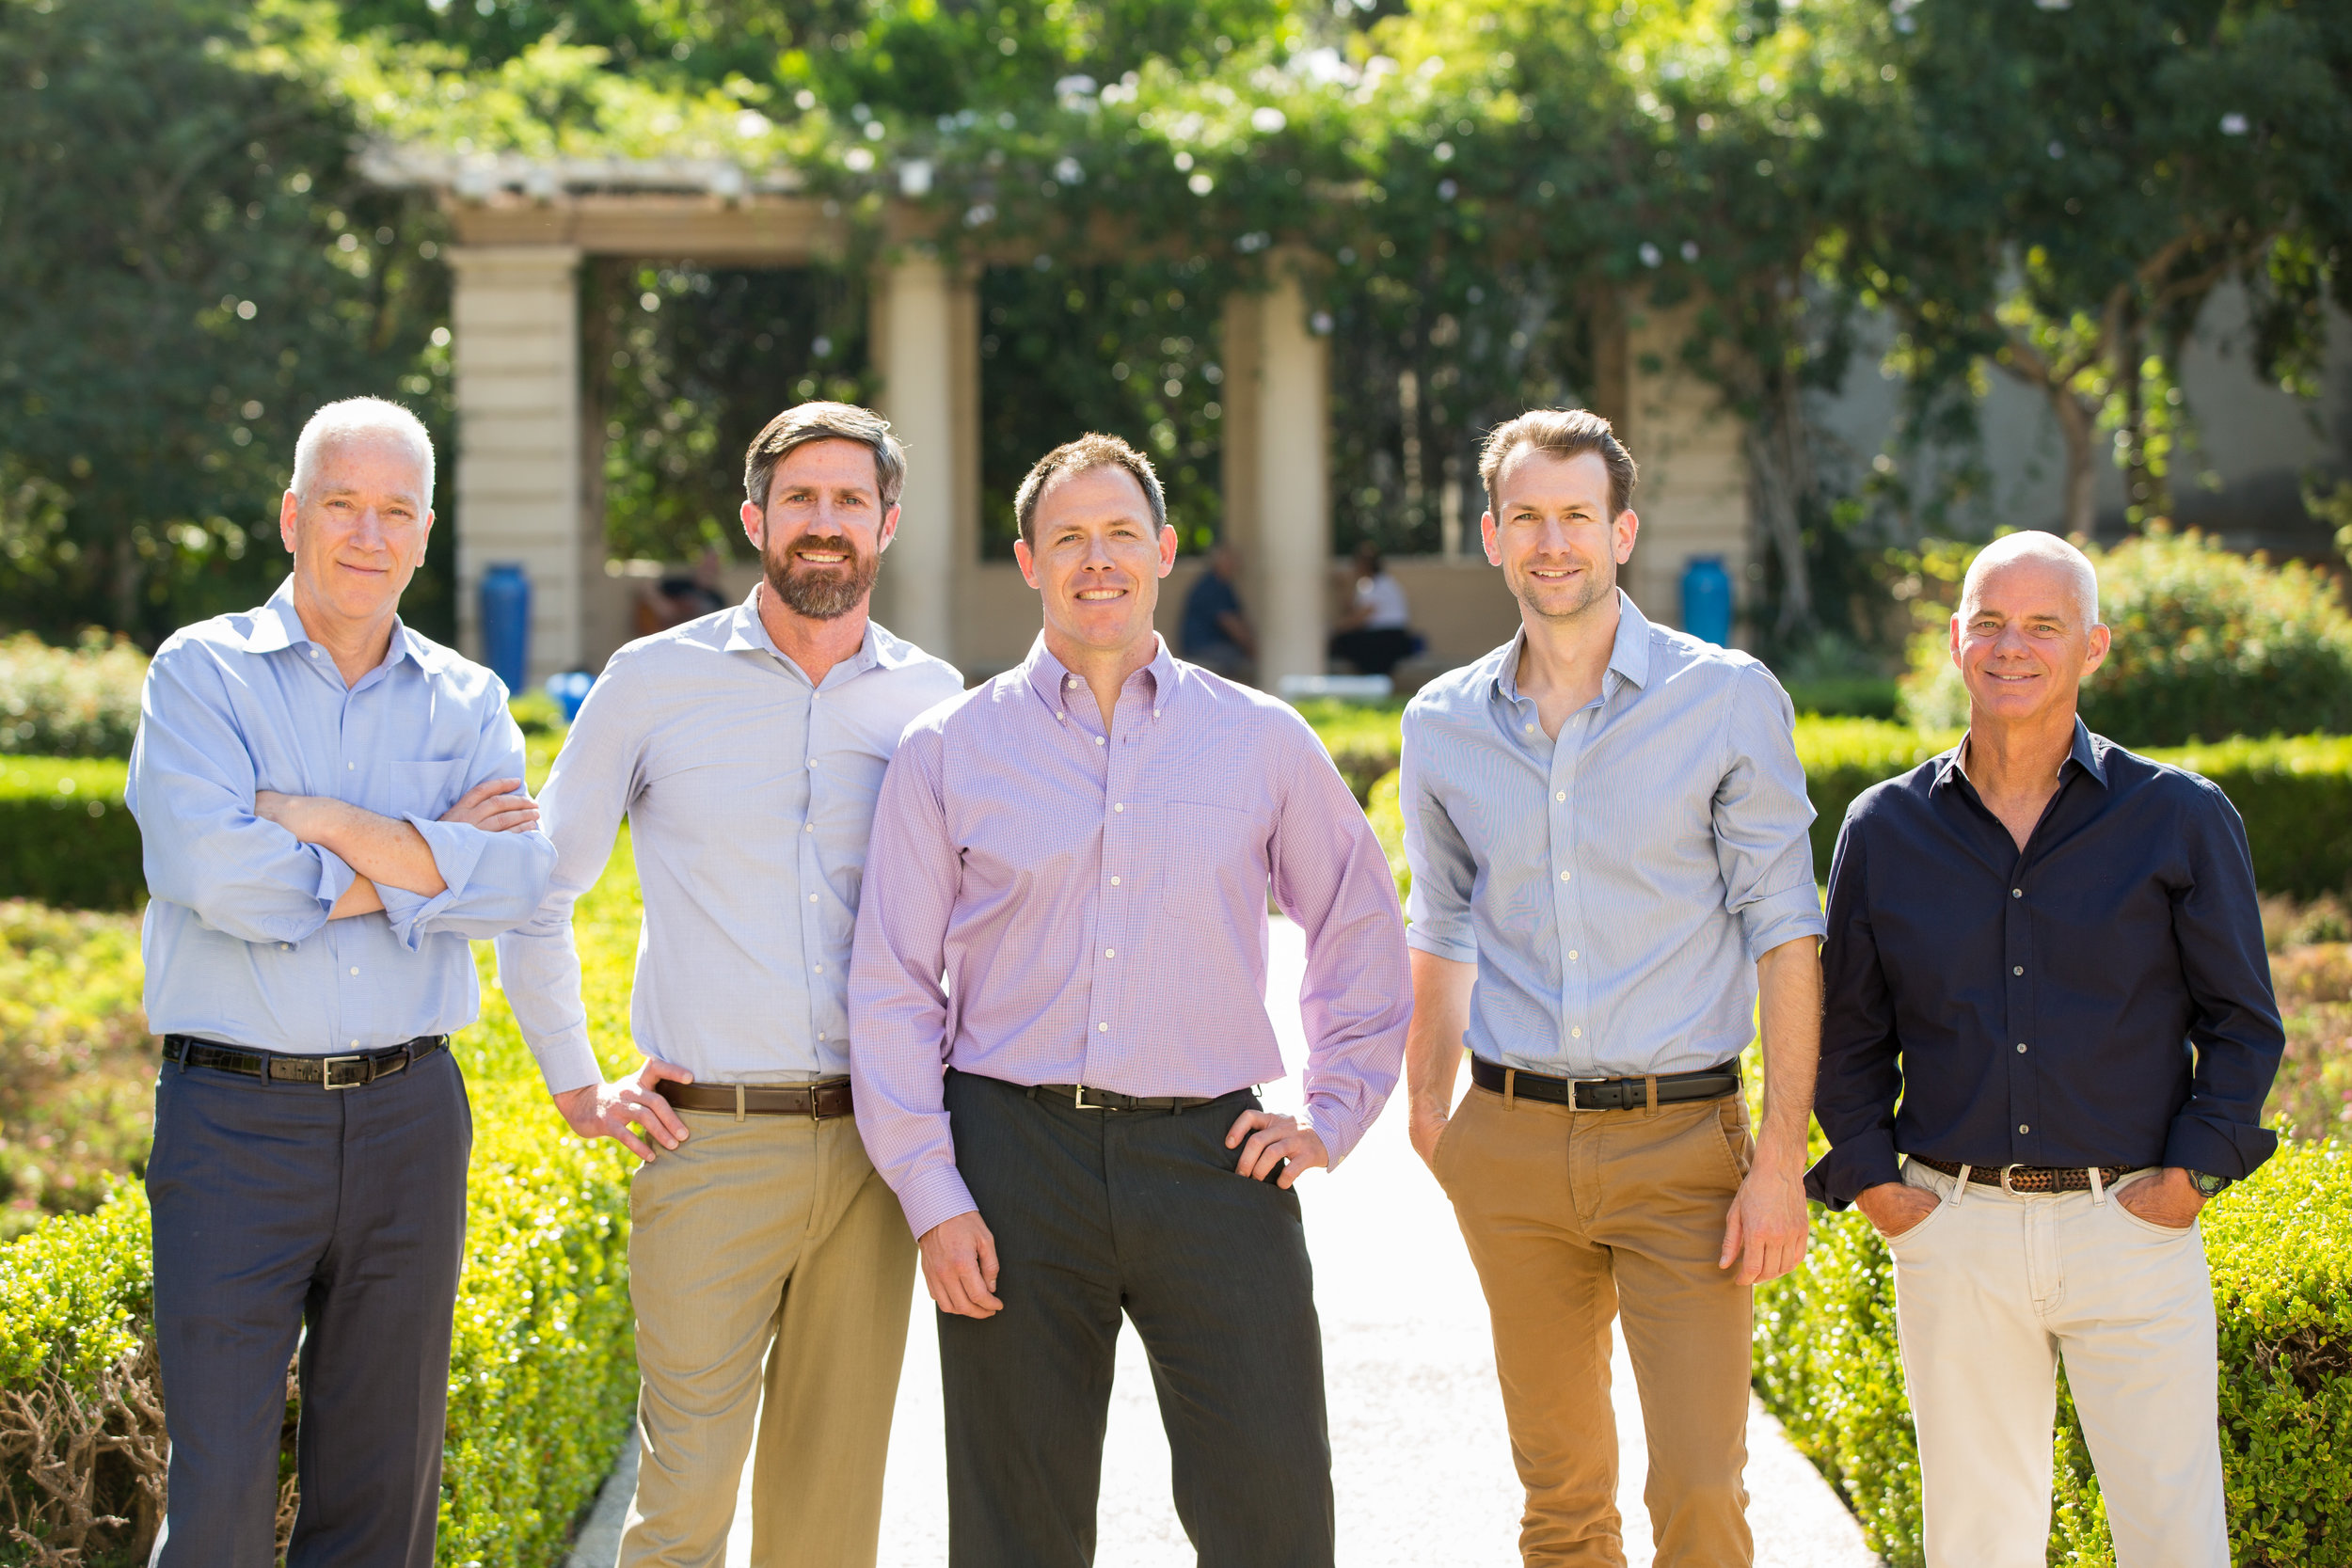 2017:  Hope-Amundson joins Coffman in San Diego and announces new principals in 2018. (Pictured L-R) Jim Amundson, James Conley, Scott Twele, Casey Whitsett, and Chuck Hope.